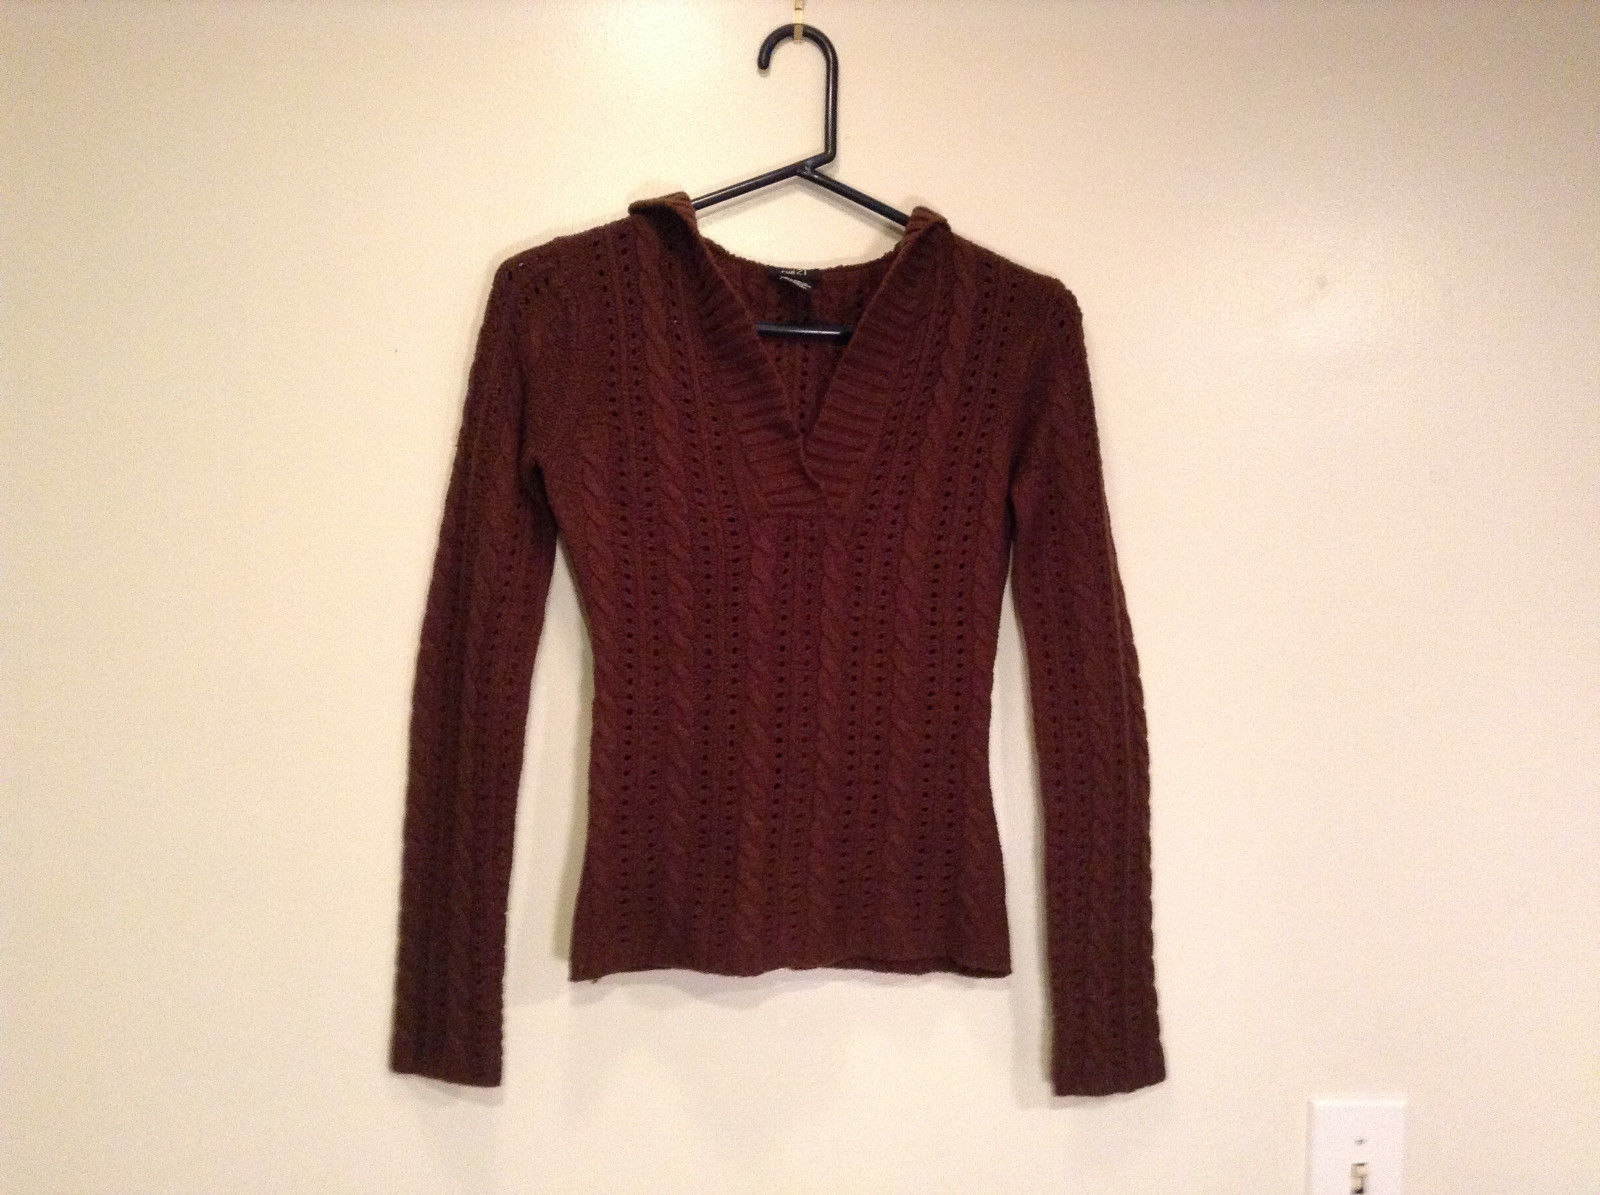 Dark Brown Long Sleeve Hooded Knitted Sweater by Rue 21 V Neck Size Small